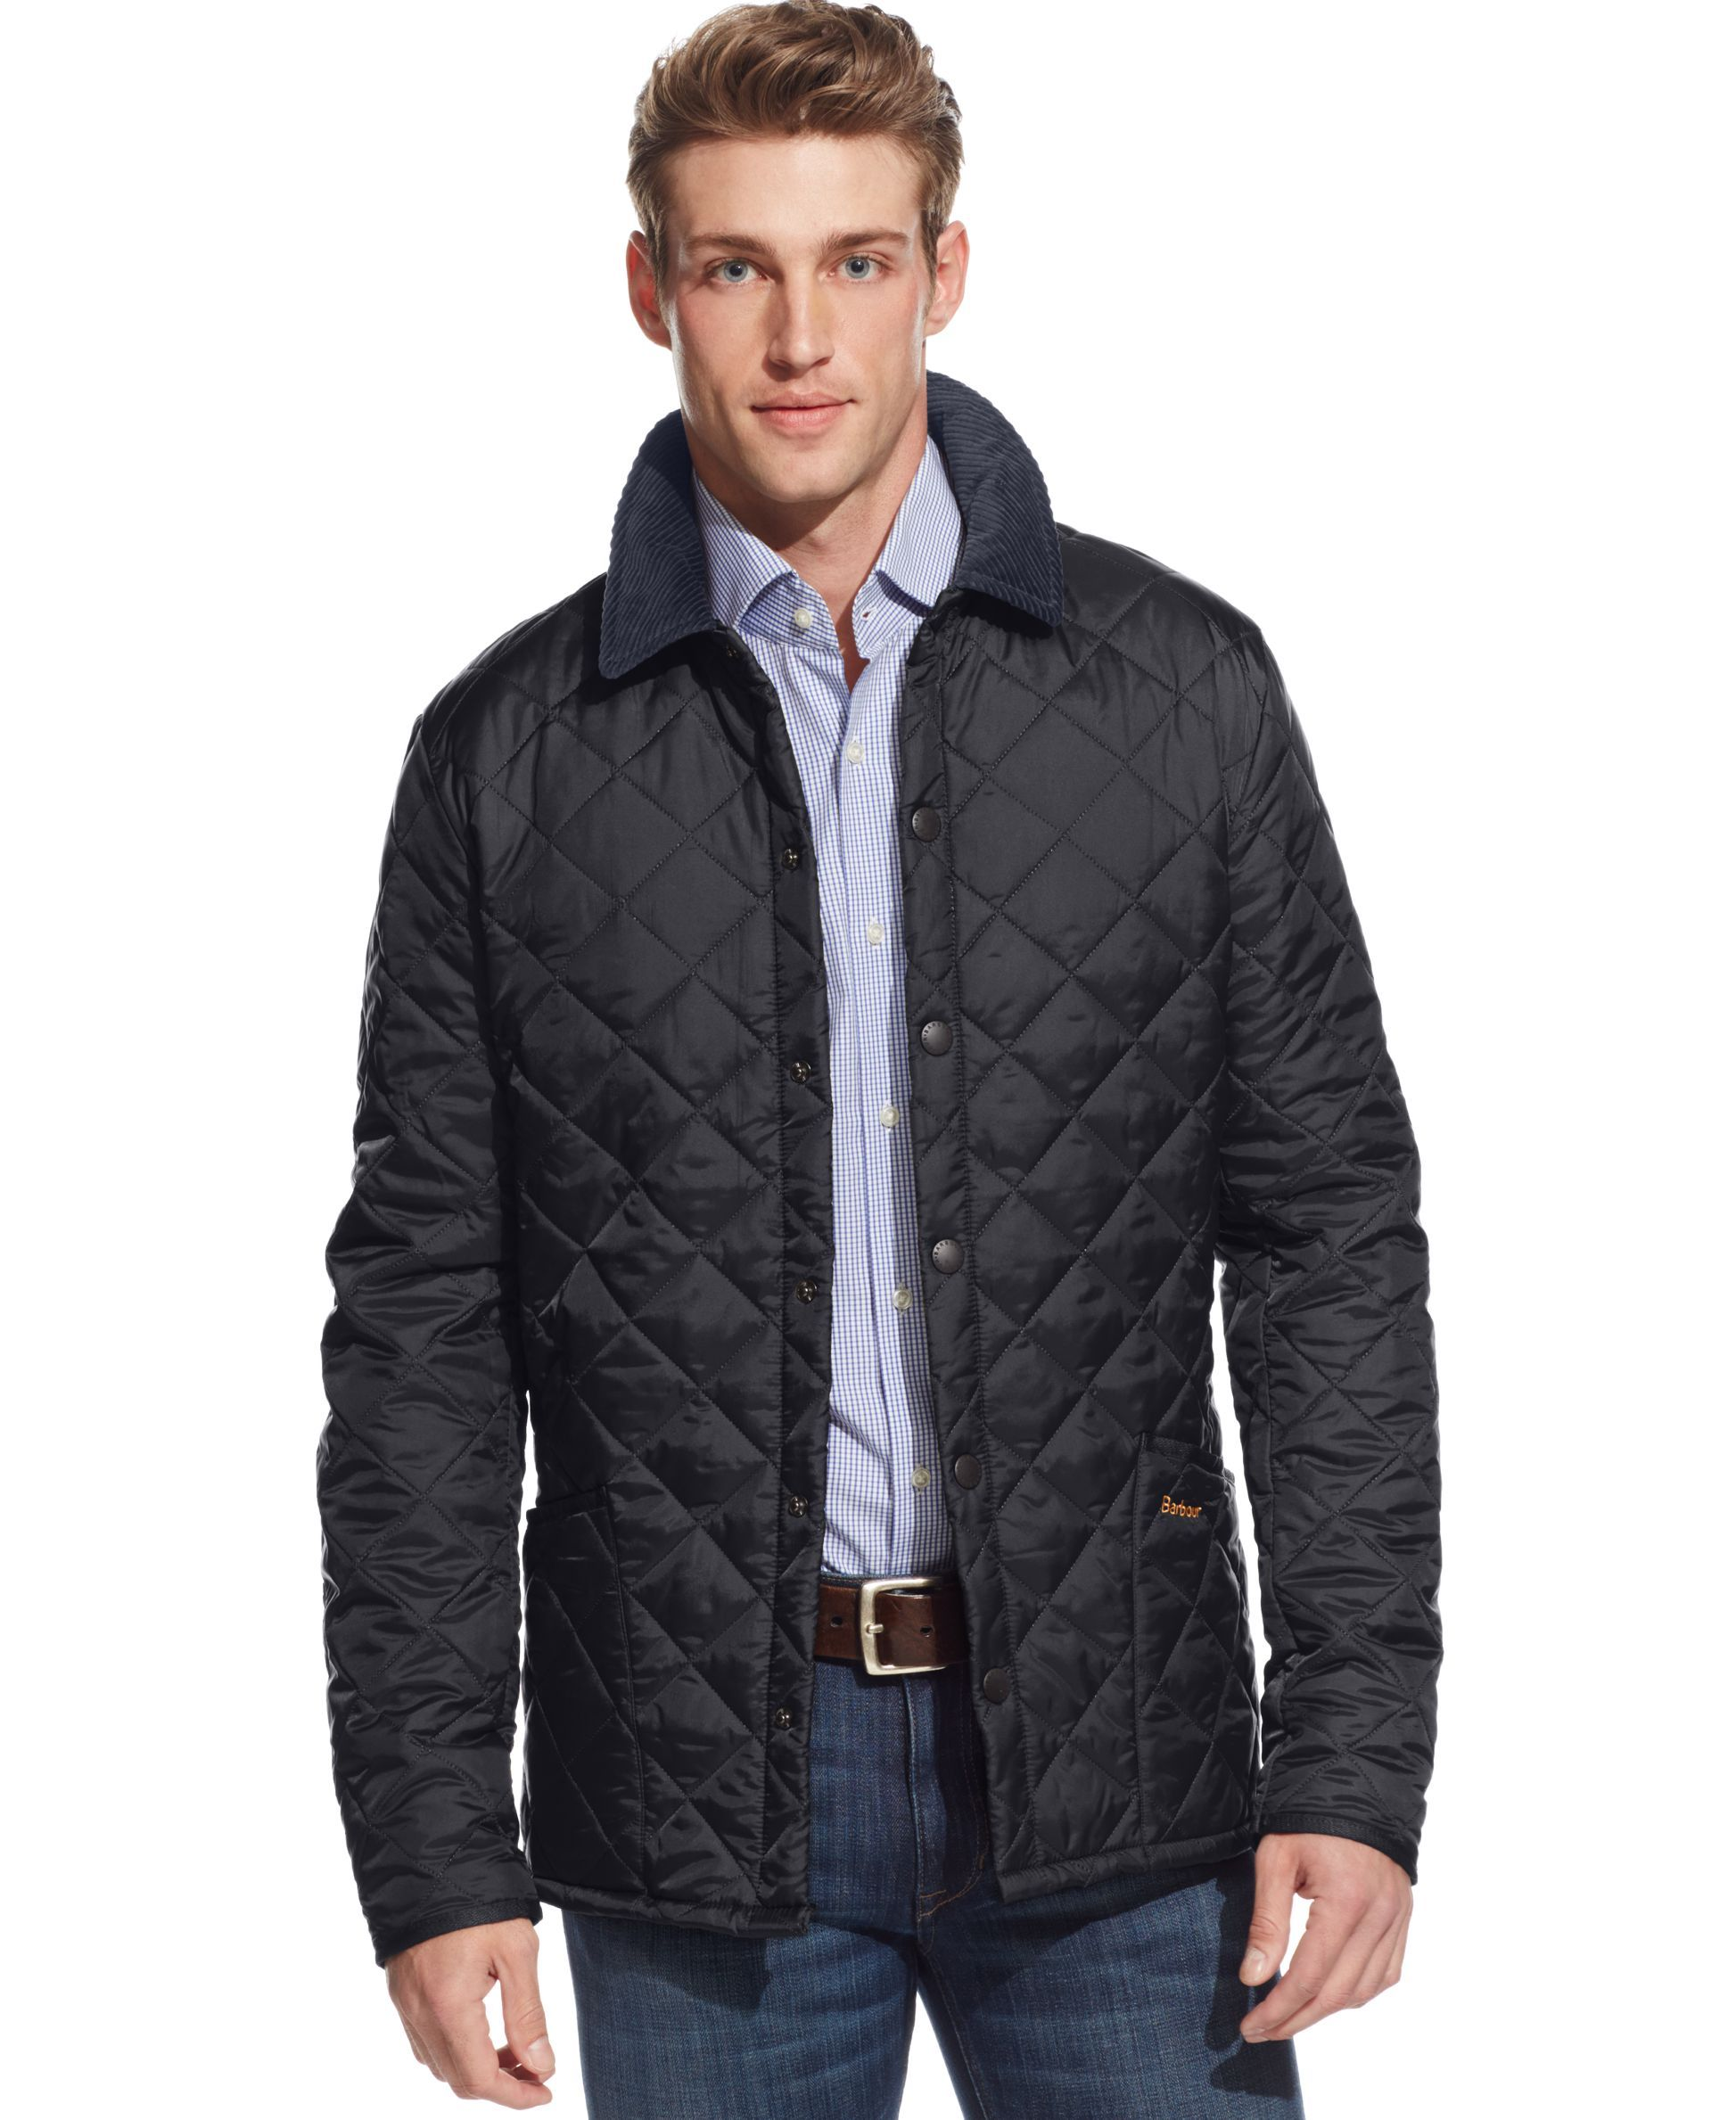 s barbour quilted jacket quilt mens height width black trim men threshold heritage liddesdale